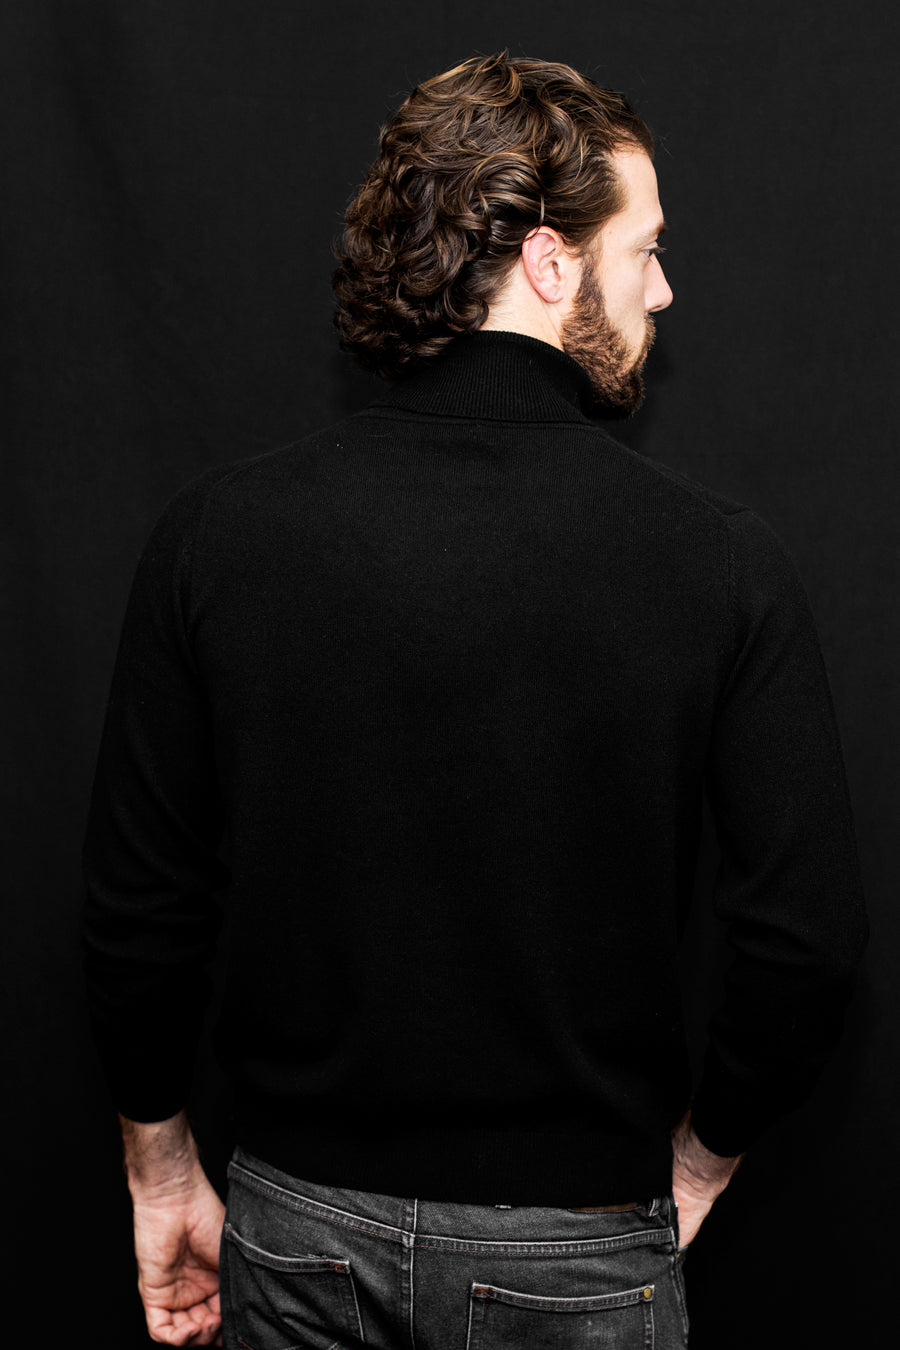 pine cashmere mens classic 100% pure cashmere turtleneck sweater in black